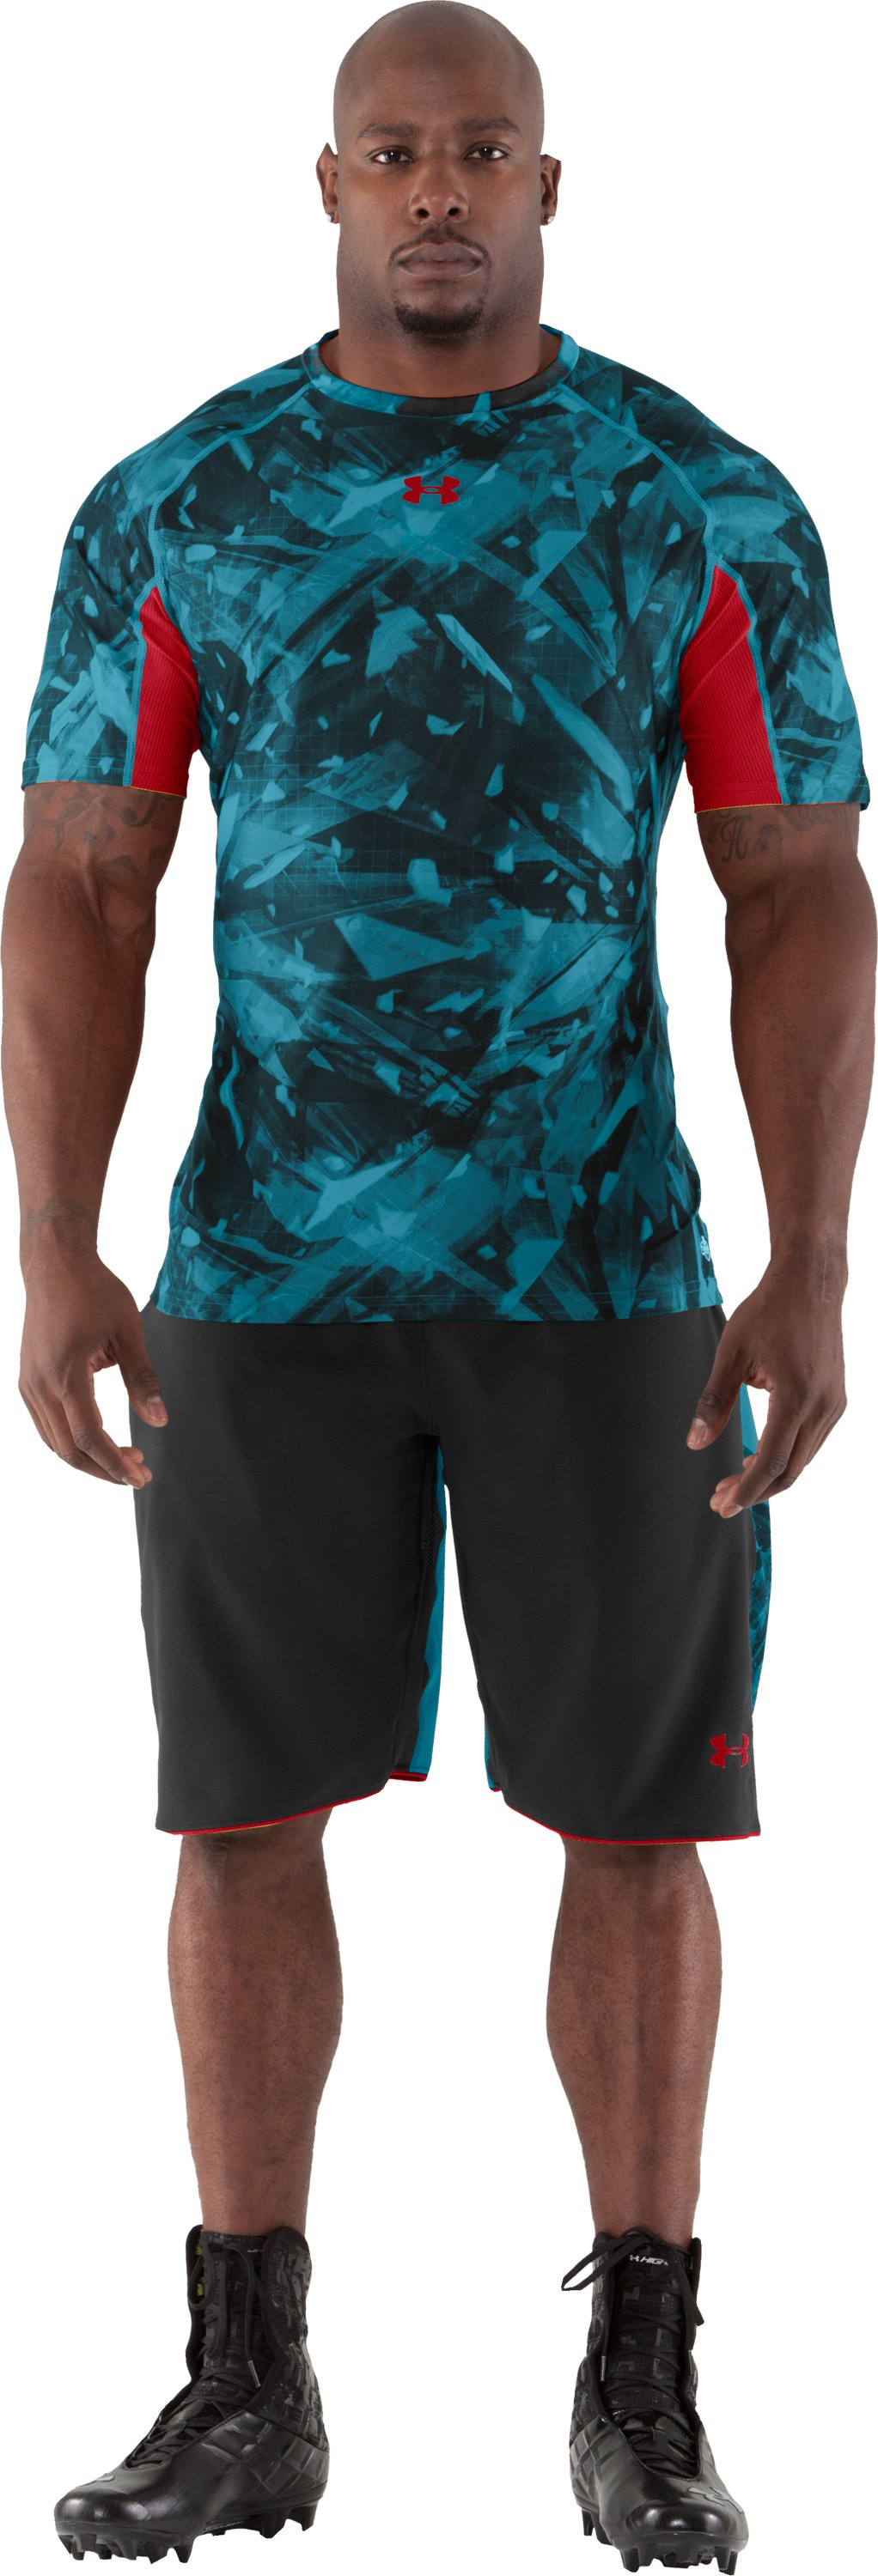 Men's NFL Combine Authentic Fitted Short Sleeve, Capri, zoomed image